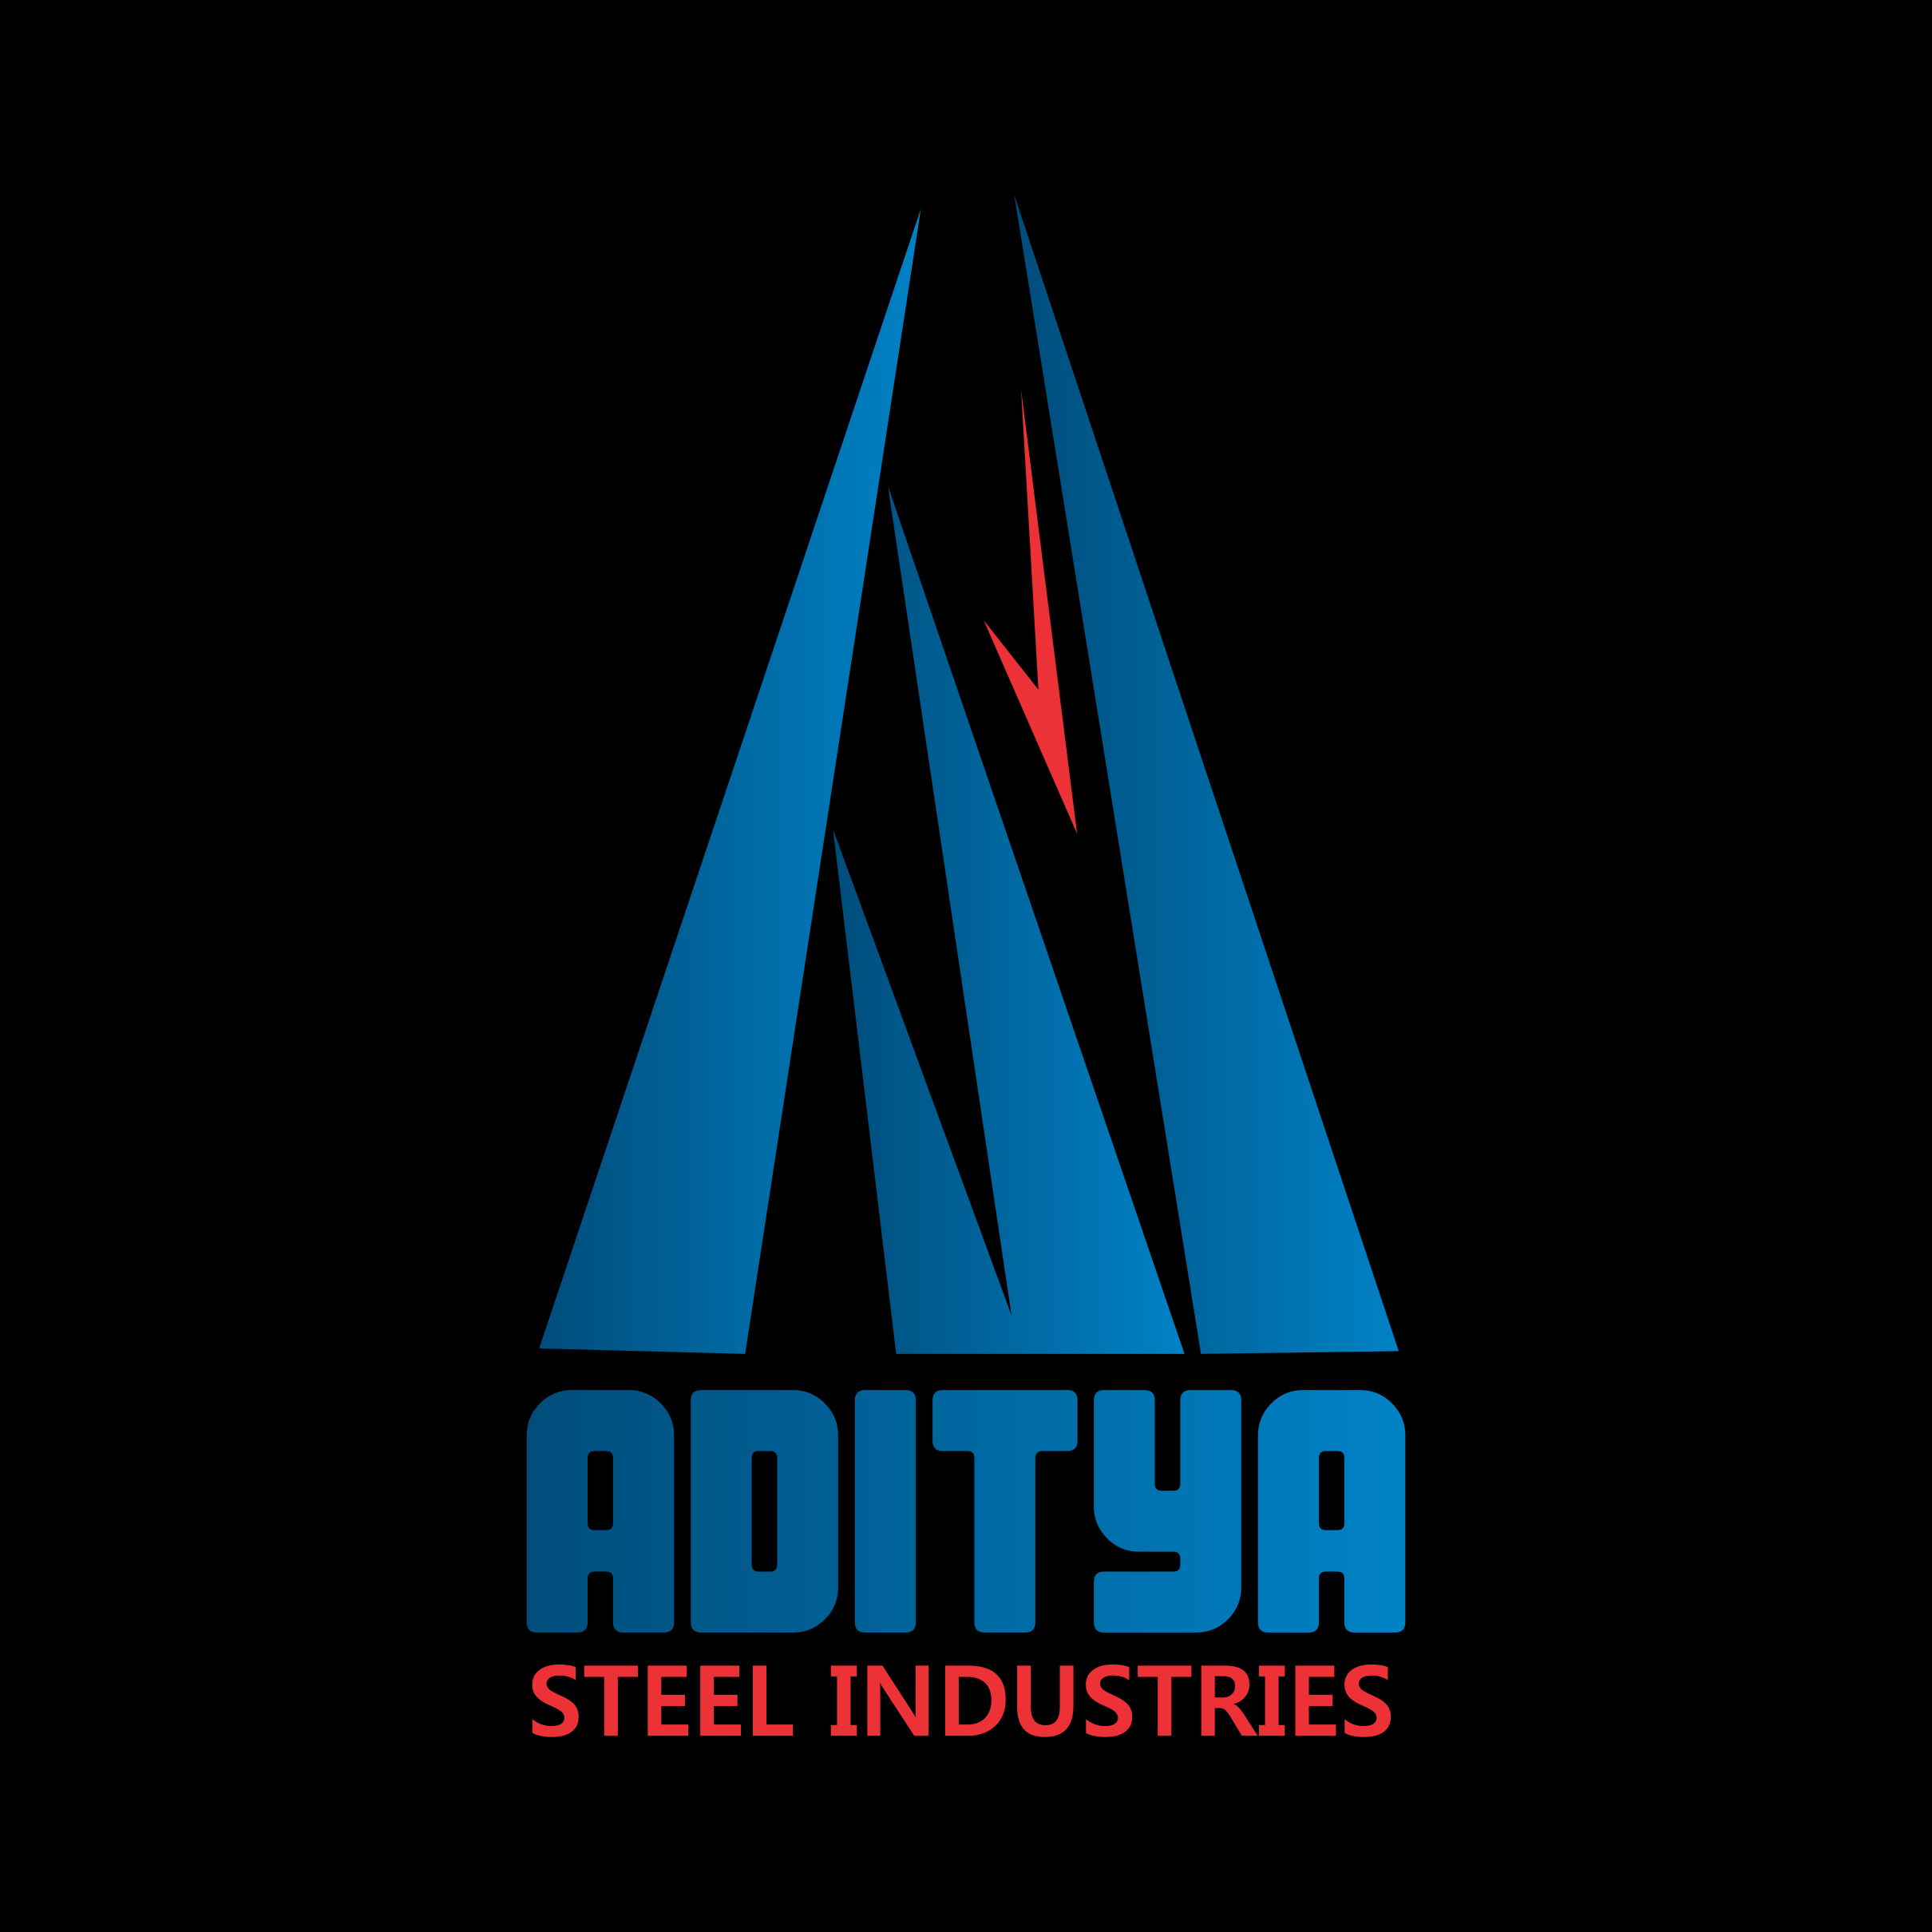 Aditya Steel Industries Pvt Ltd